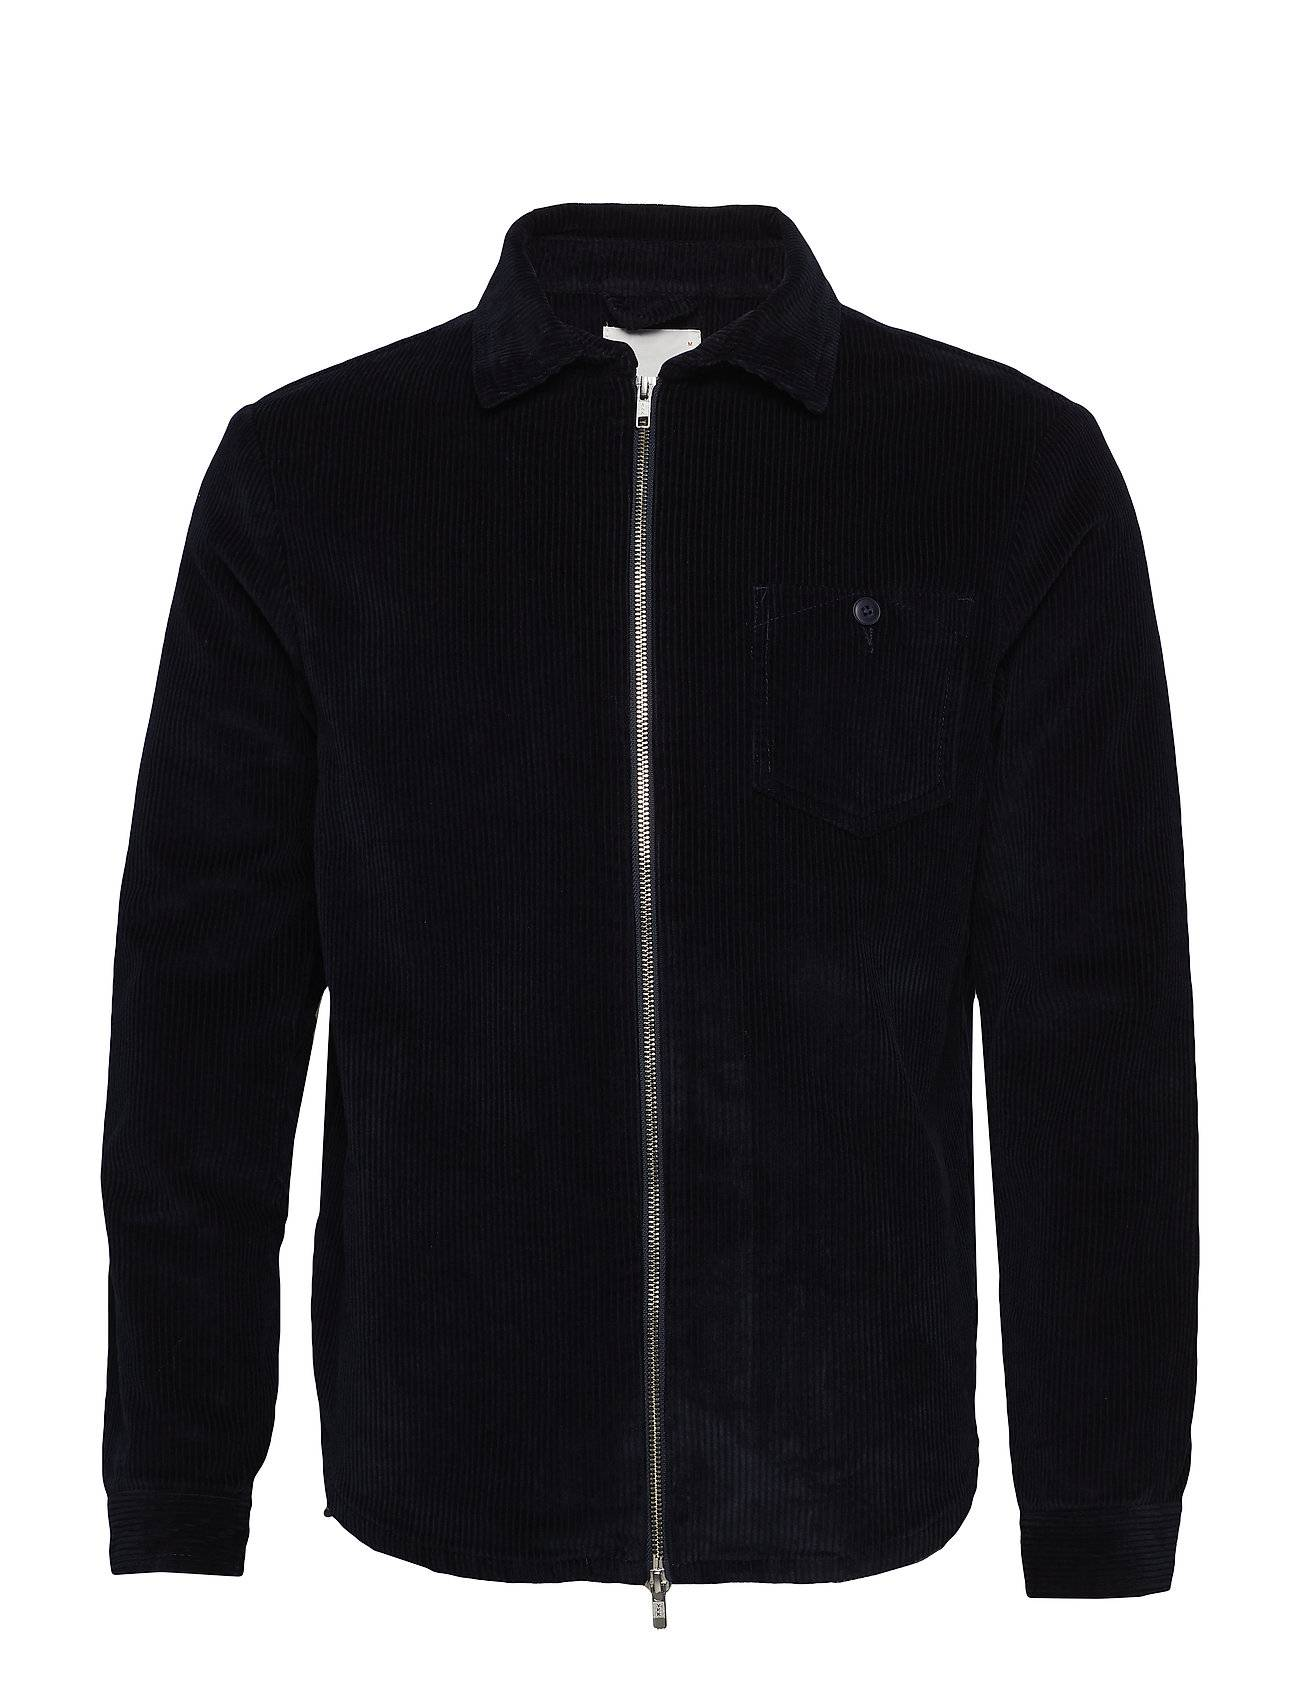 Knowledge Cotton Apparel Cord Shirt Jacket 8 Wales - Ocs